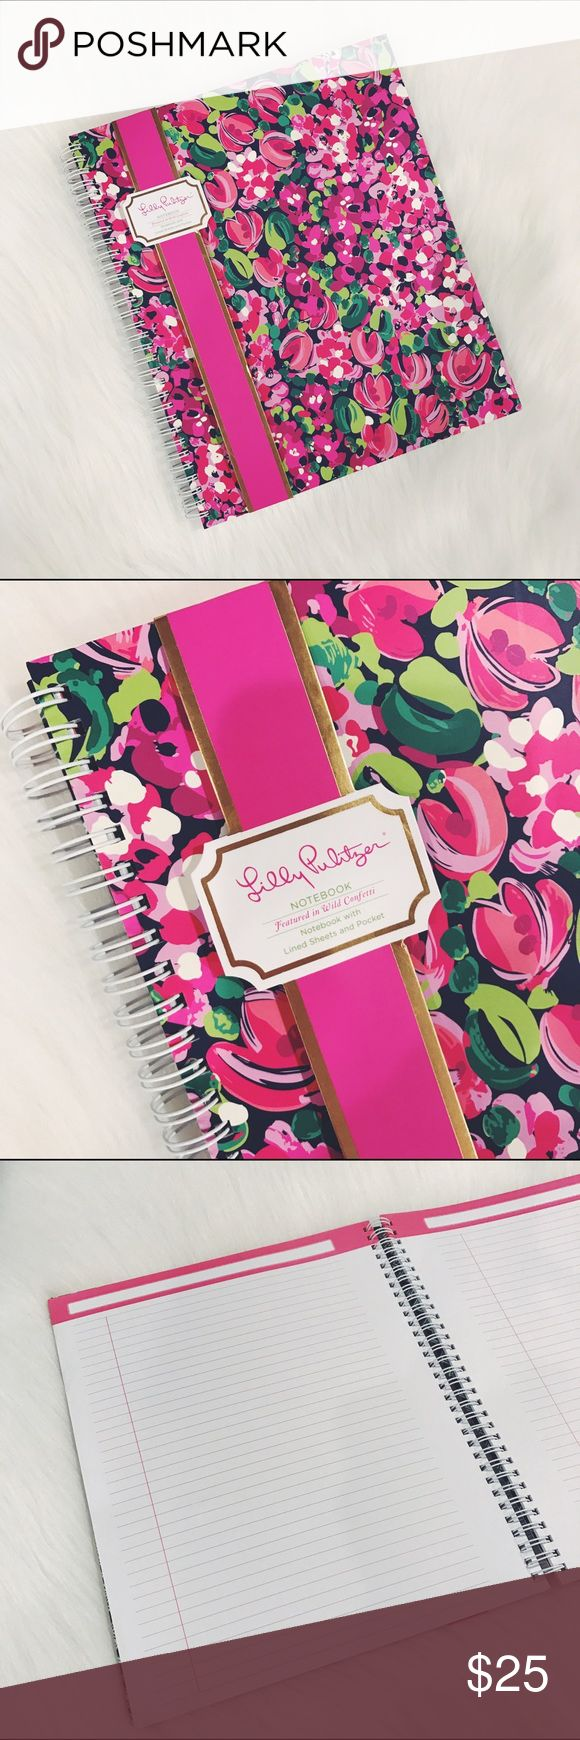 """🎄SALE🎄Lilly Pulitzer Confetti Spiral Notebook Wild Confetti, large Hardcover notebook with spiral and lined sheets, size small/medium, perfect for a purse or backpack. Measurements: 9 1/4""""x 11"""" brand new.  ✅Check my other Kate Spade and Lilly Pulitzer items, great for Christmas Gifts.            🎄10% off bundle of 3 items or more!🎄                             •NO TRADING                             •FINAL PRICE                             •smoke free                             •fast…"""